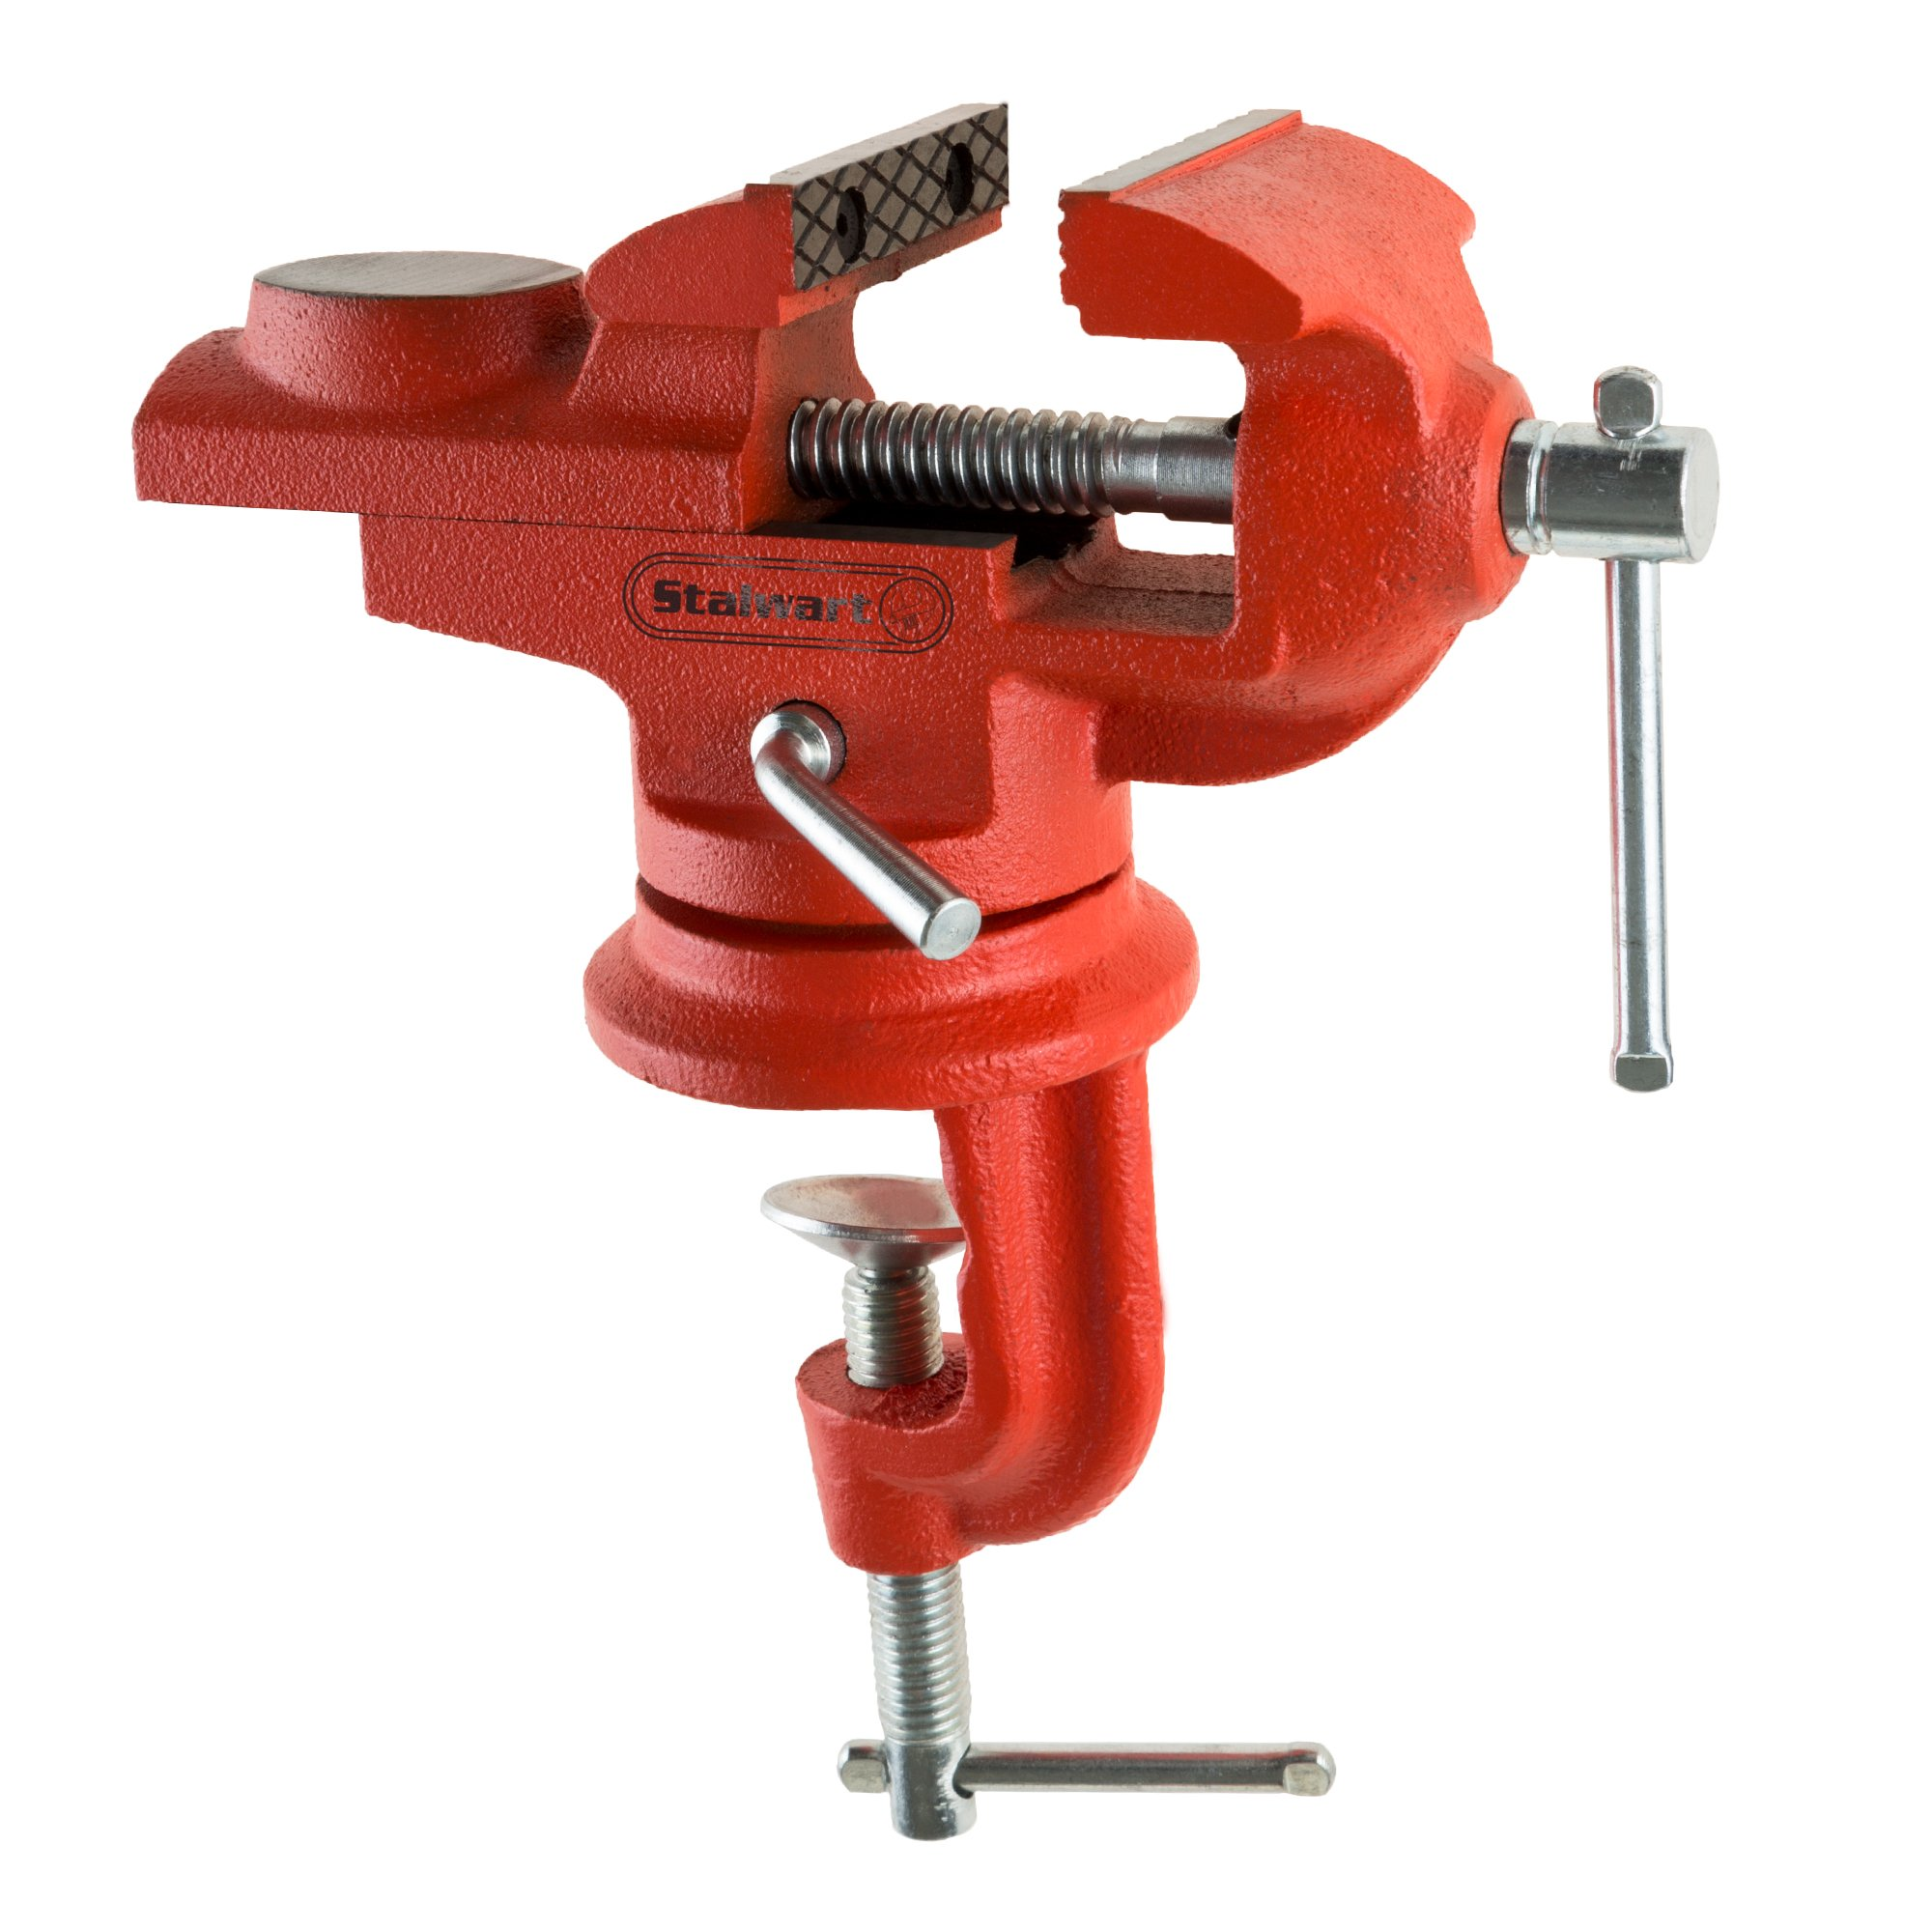 2.25 Inch Jaw Steel Universal 360° Swivel Table Top Vise By Stalwart by Stalwart